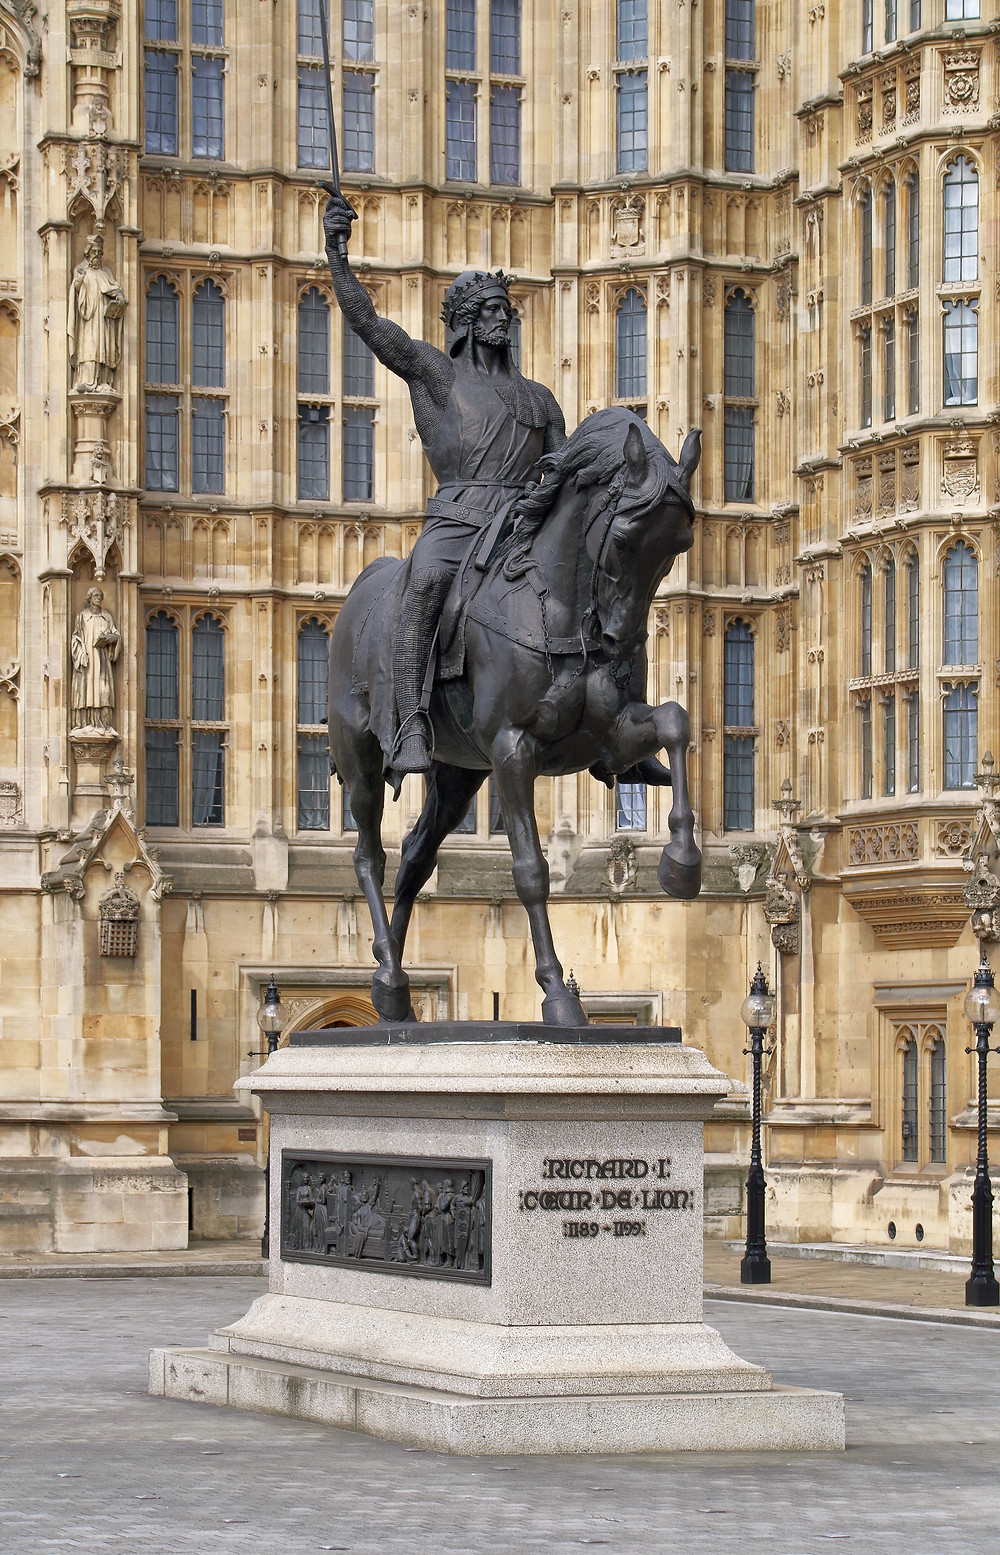 Richard Coeur de Lion by Carlo Marochetti, an equestrian statue depicting Richard I of England. After its model was displayed in the Great Exhibition of 1851, a bronze casting was installed outside the New Palace of Westminster in 1860.